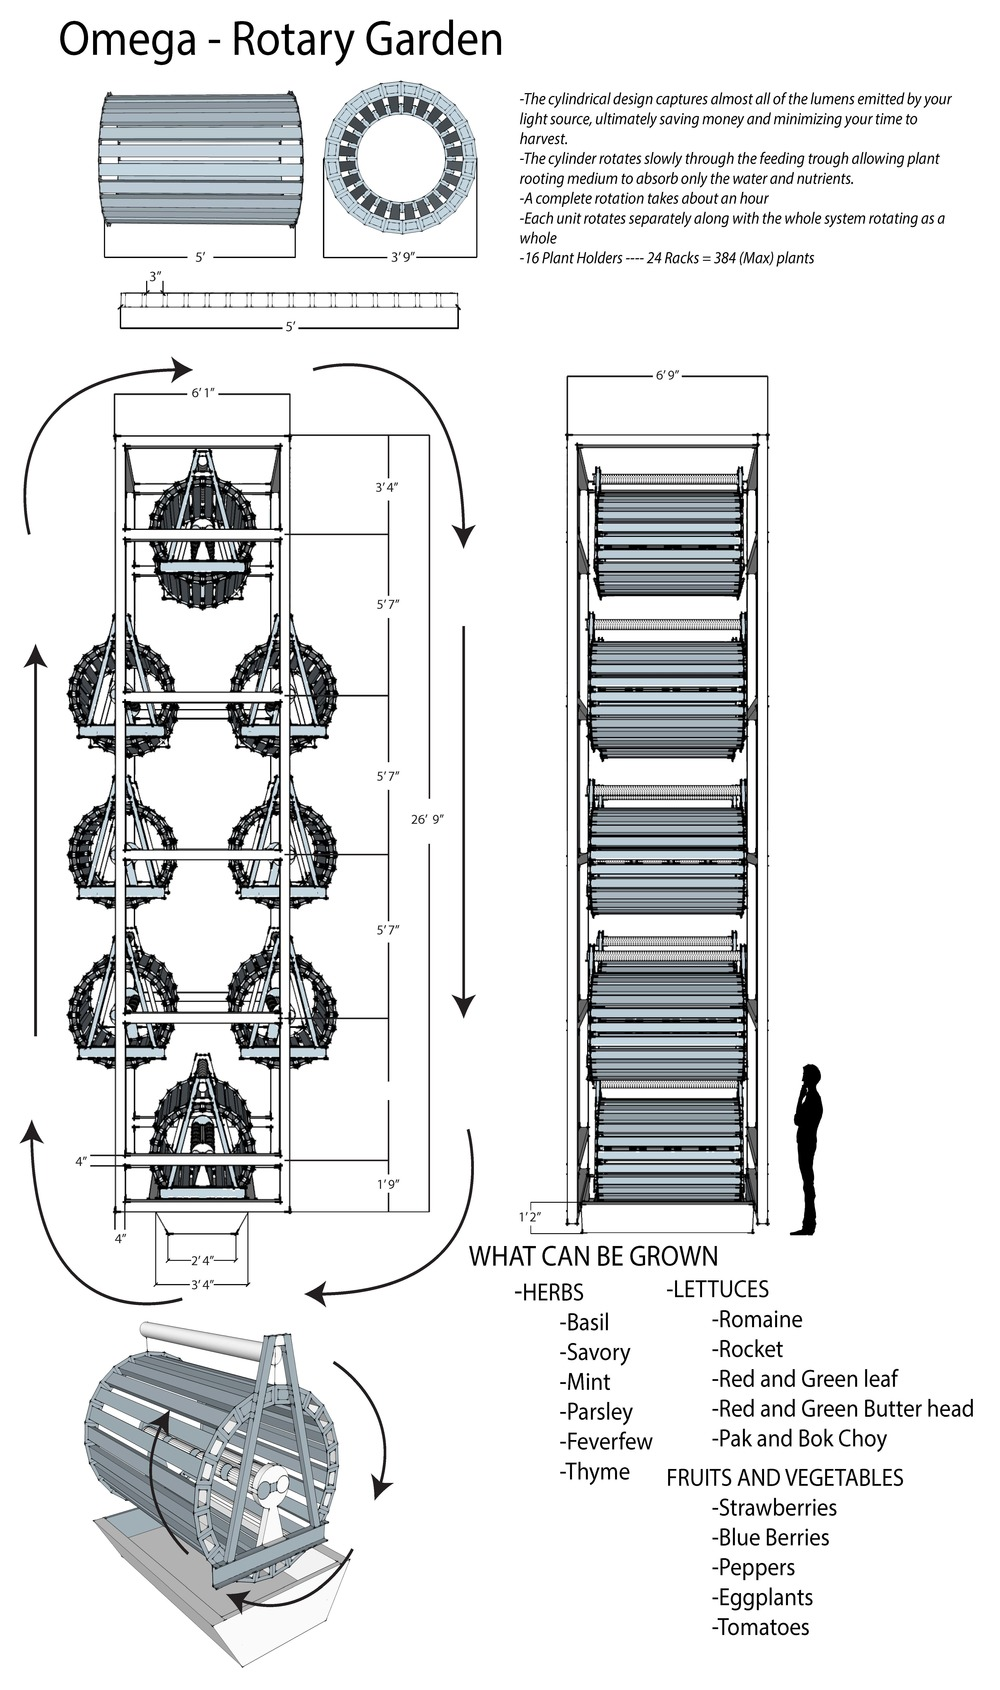 The Omega Garden is a rotary garden system. As each individual unit rotates the whole rack rotates together. This allows for efficient light and water use because the water troff is at the bottom with no need to pump water up and light is in the middle allowing plants to grow around it giving the optimal amount of lumens to the plants.  Each unit can grow a maximum 384 but I'm going to say the max should be 350. You can harvest lettuce every 20 days , that means every 20 days each rack can produce 2,800 heads of lettuce.